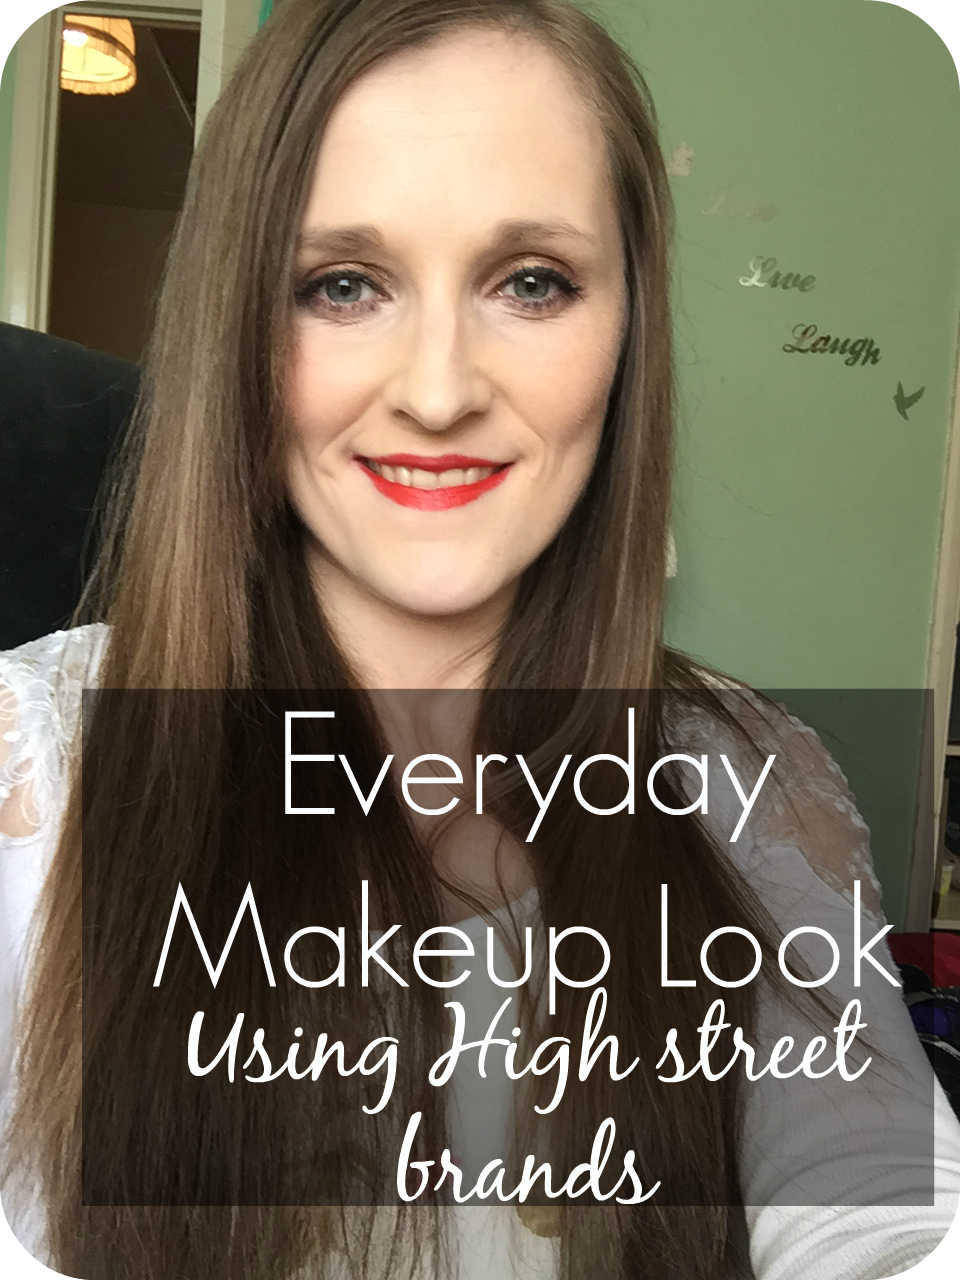 Everyday Makeup Tutorial With Melt Cosmetics: Everyday Makeup Look Using High Street Brands